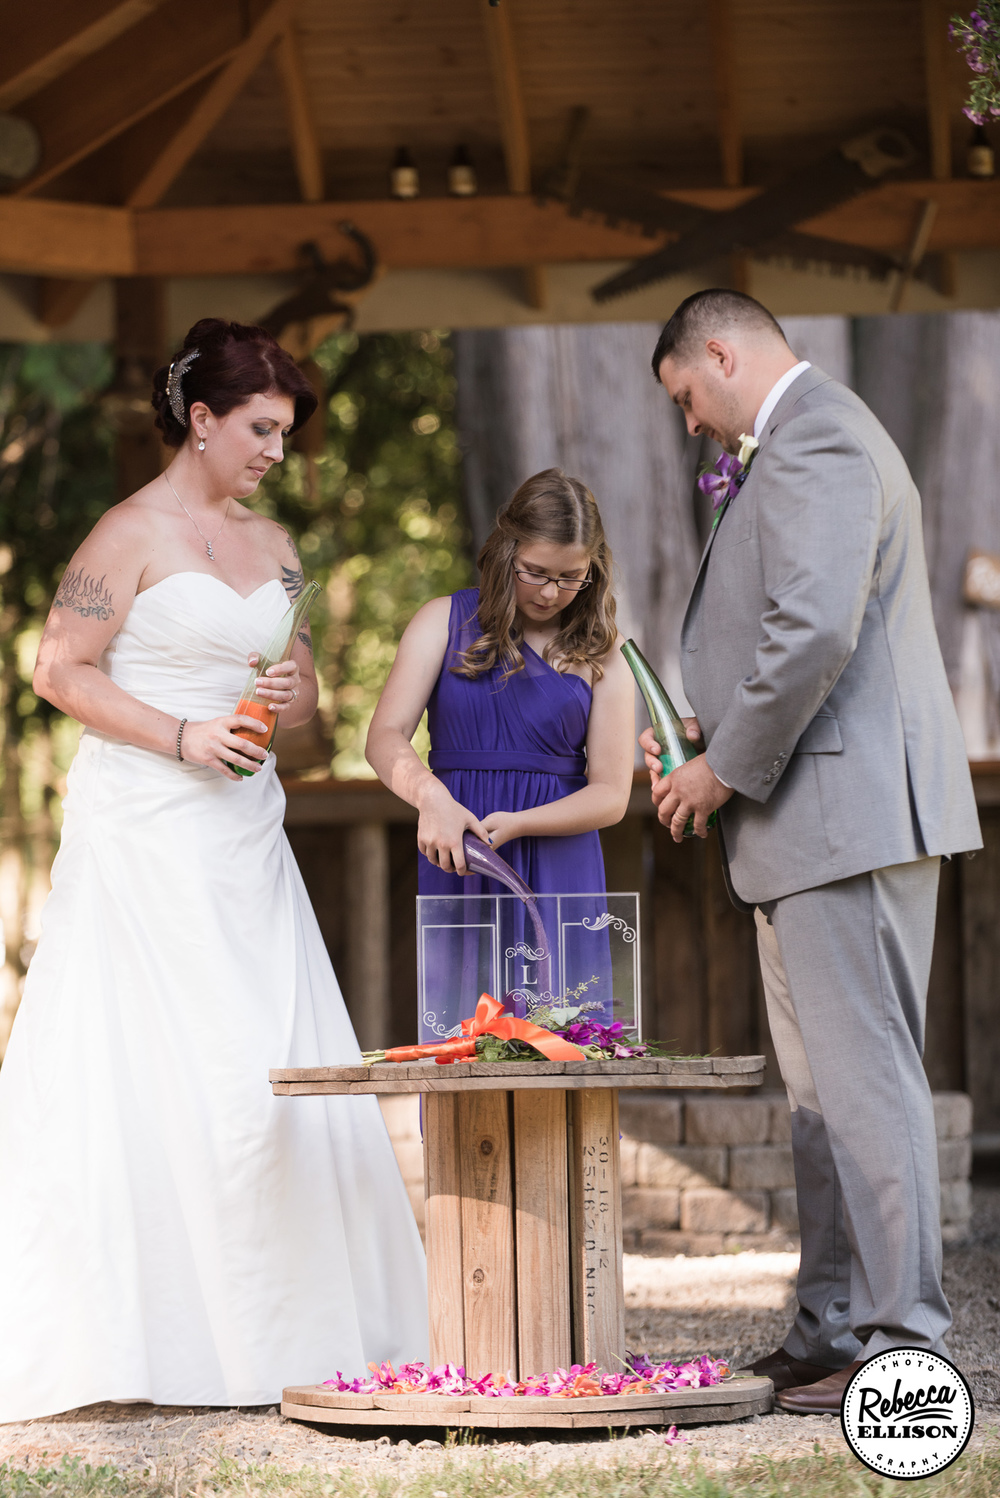 Purple-Orange-DIY-Farm-Wedding-lamb-75web.jpg